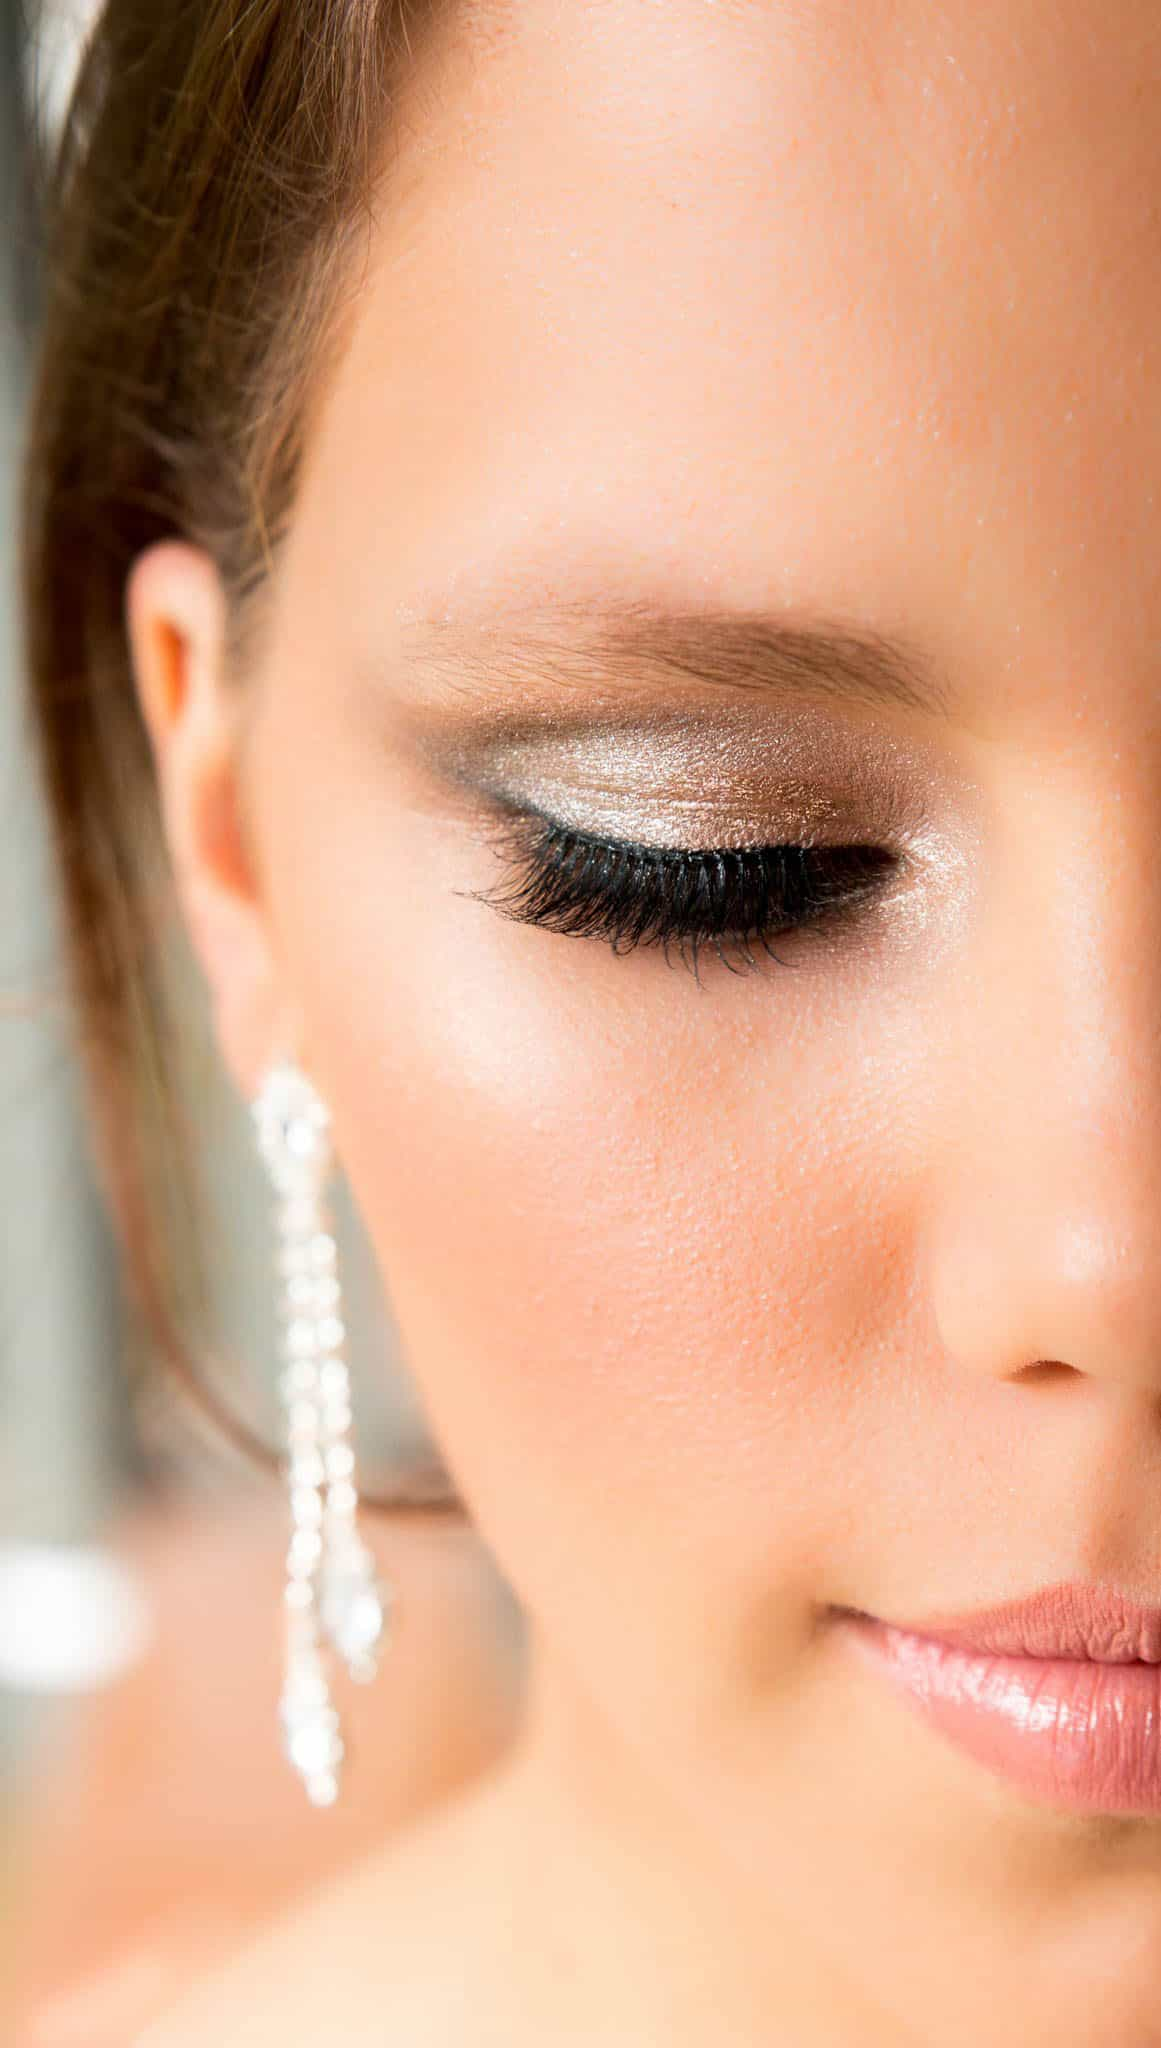 Professional Makeup Artist Lighting: Latonas Professional Makeup